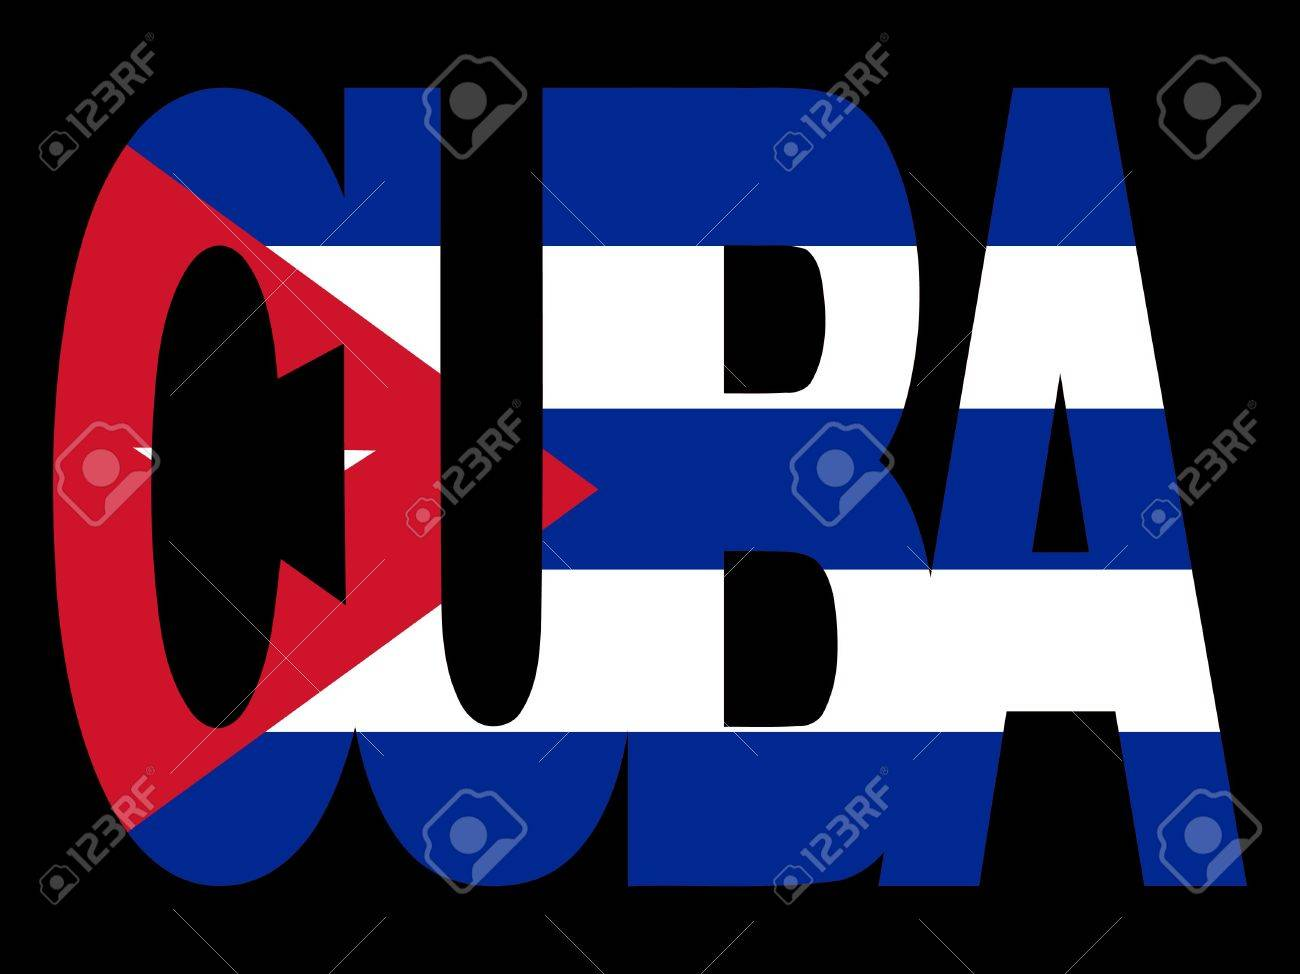 Outline Of Cuba Text With Cuban Flag Illustration Stock Photo